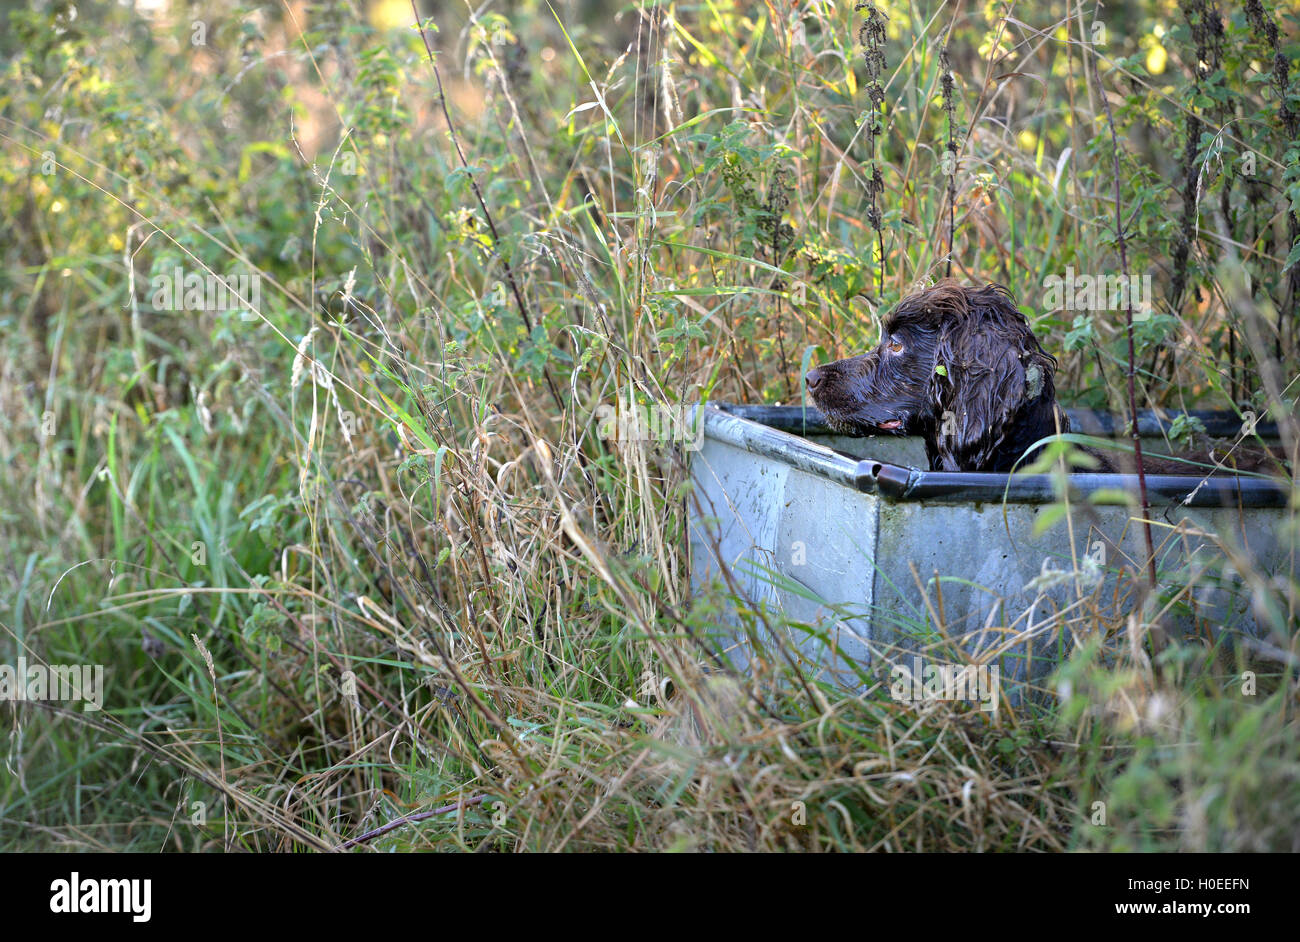 Working cocker spaniel sitting in a cattle trough - Stock Image